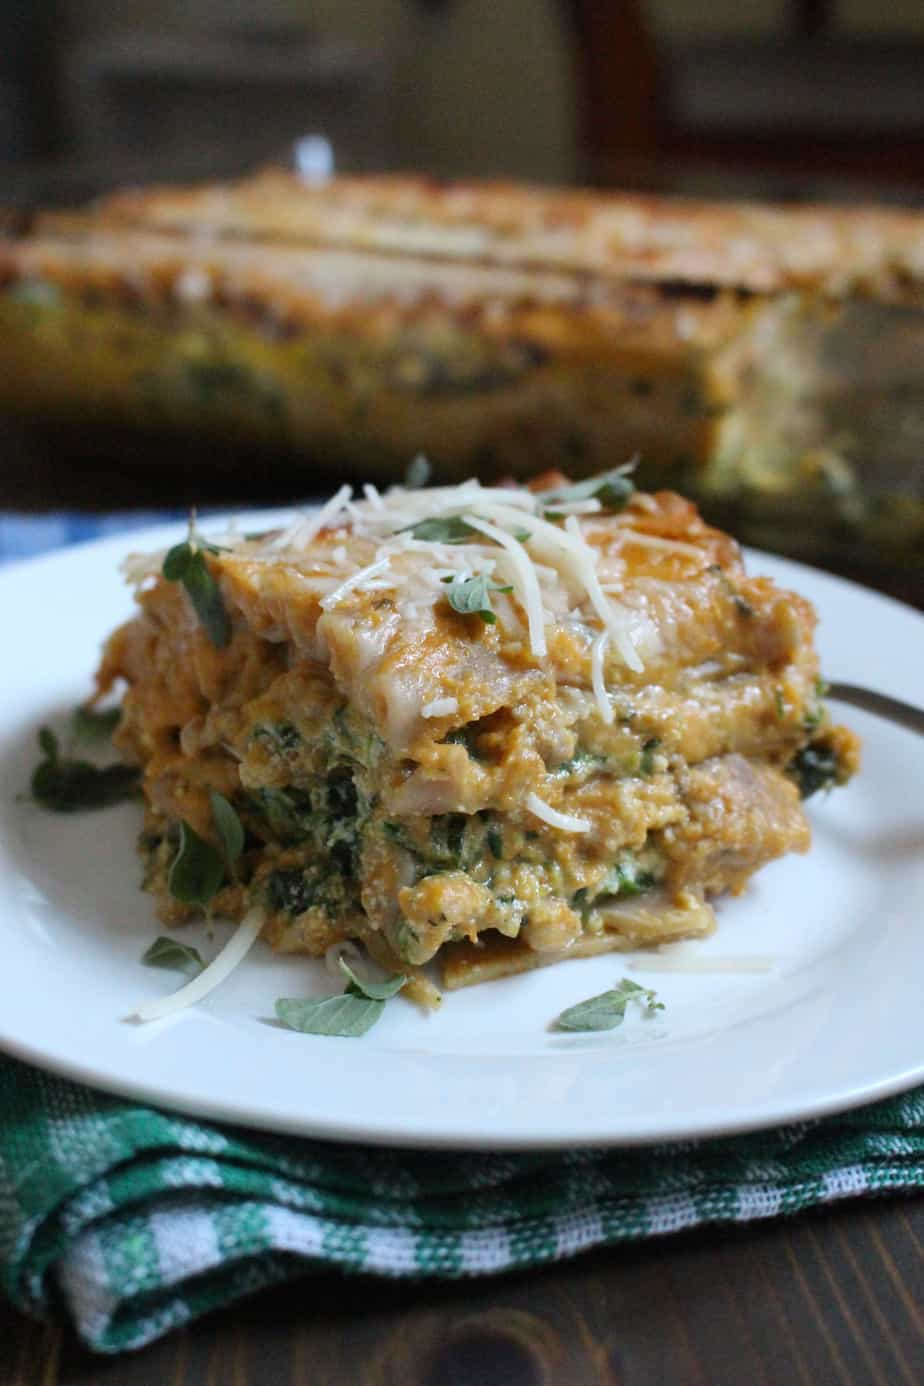 pumpkin-sauce-lasagna-with-ground-meat-and-spinach-frugal-nutrition